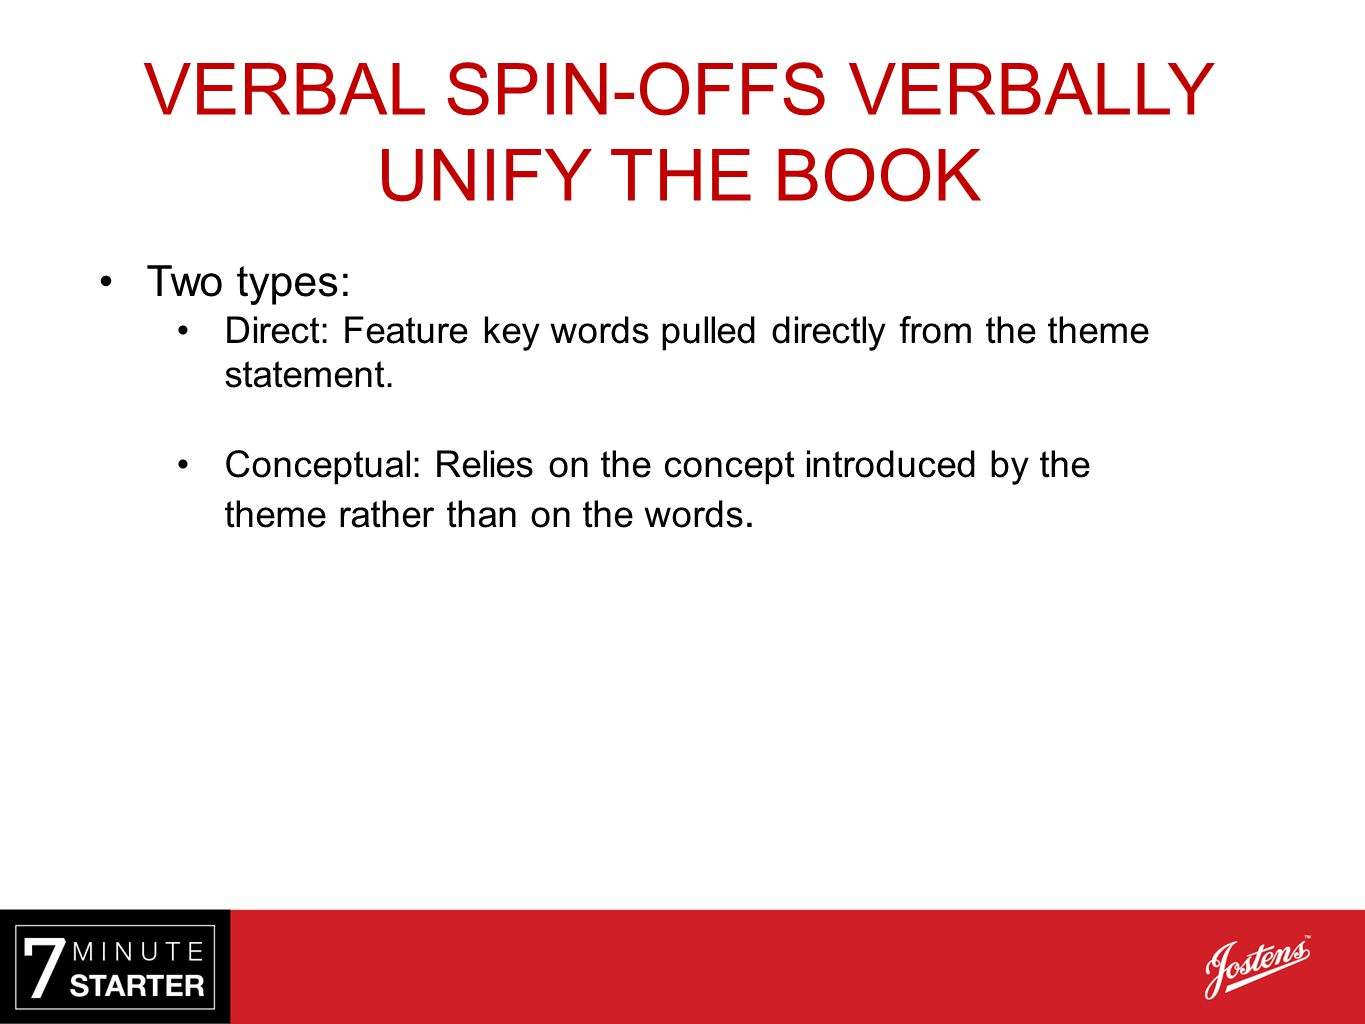 VERBAL SPIN-OFFS VERBALLY UNIFY THE BOOK